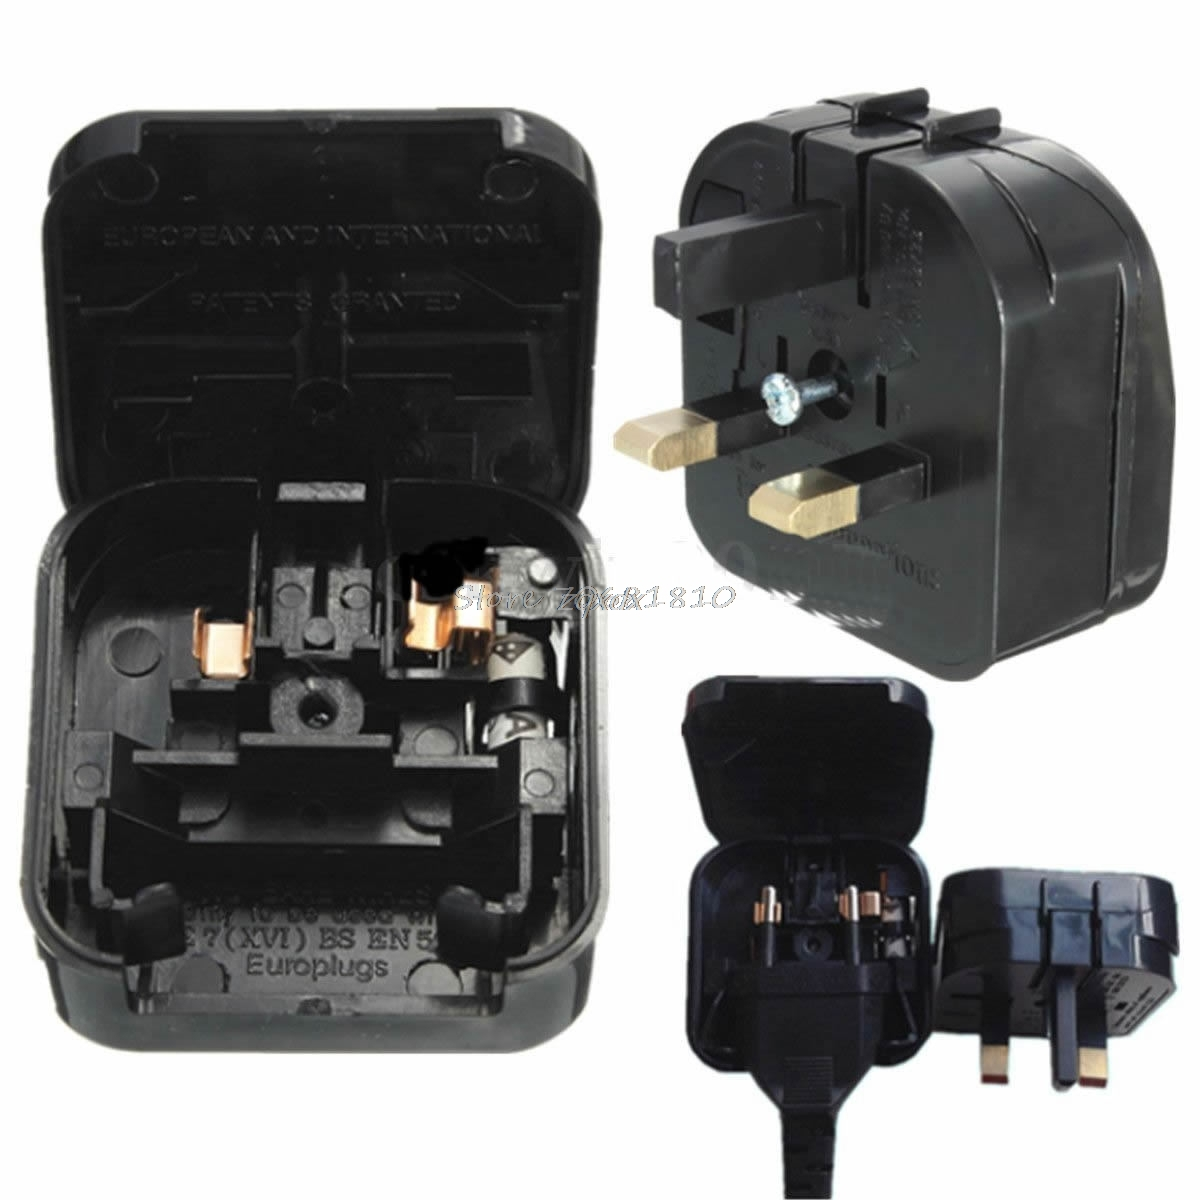 New European Euro EU 2 Pin to UK 3Pin Power Socket Travel Plug Adapter Converter